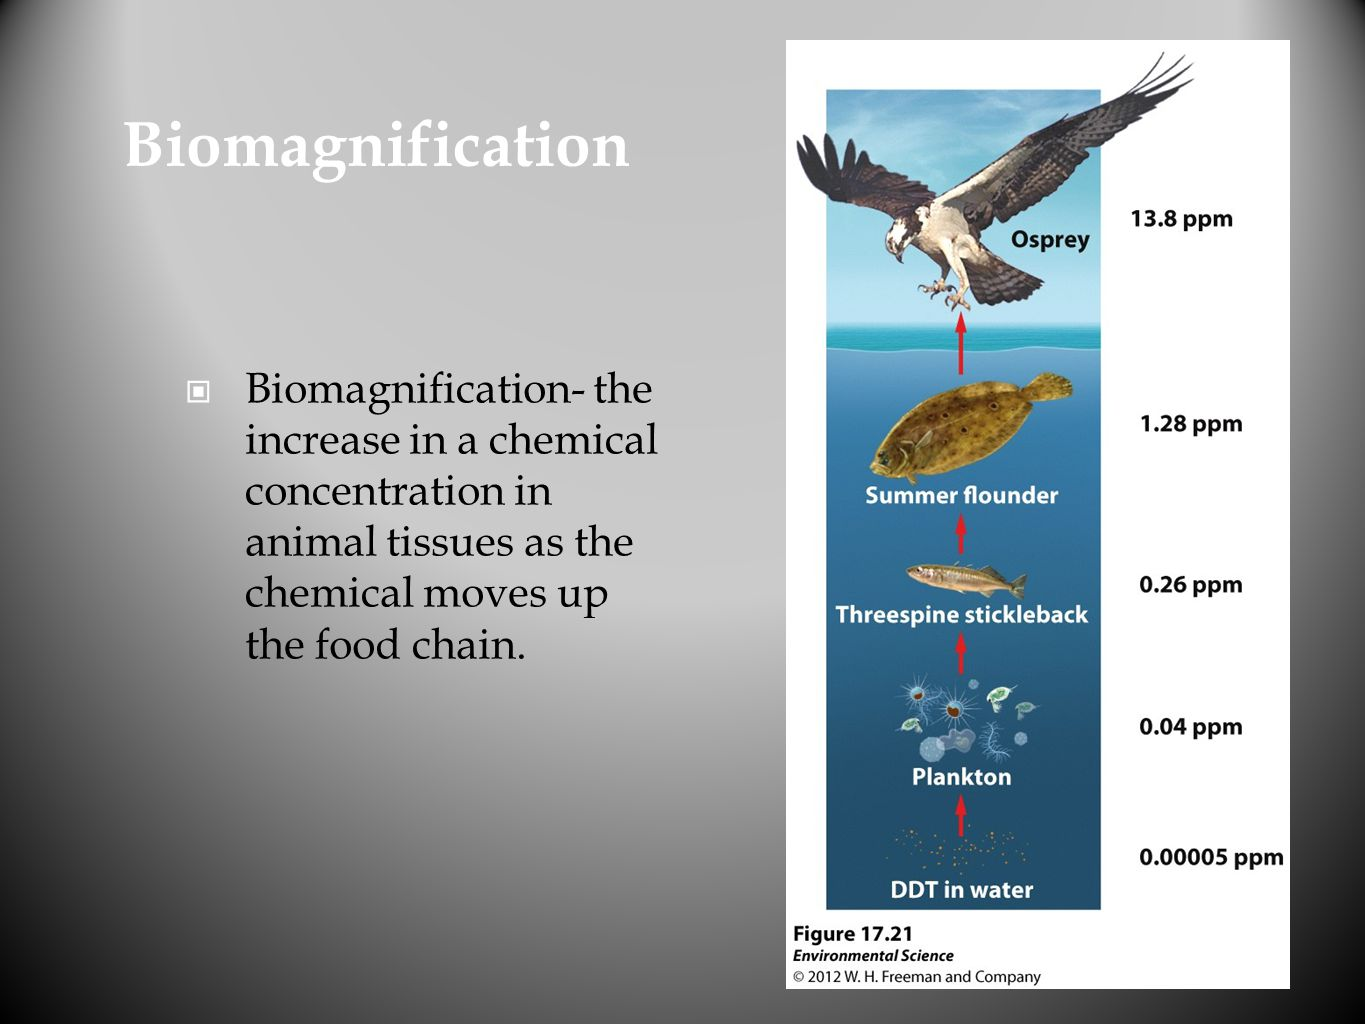 Biomagnification Biomagnification- the increase in a chemical concentration in animal tissues as the chemical moves up the food chain.